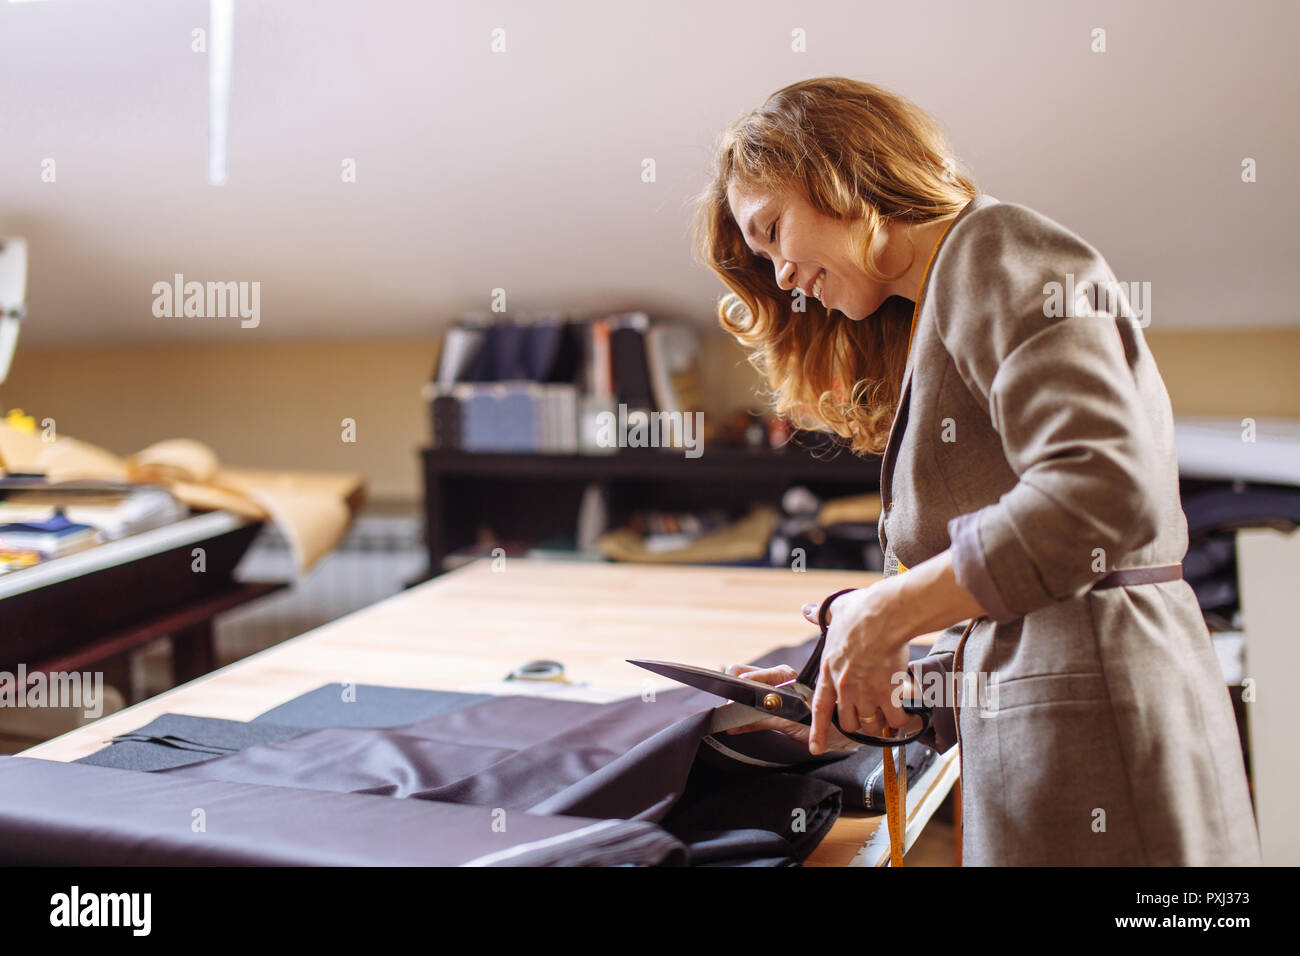 Female fashion designer working on suiting fabric with dressmaking accessories on table - Stock Image